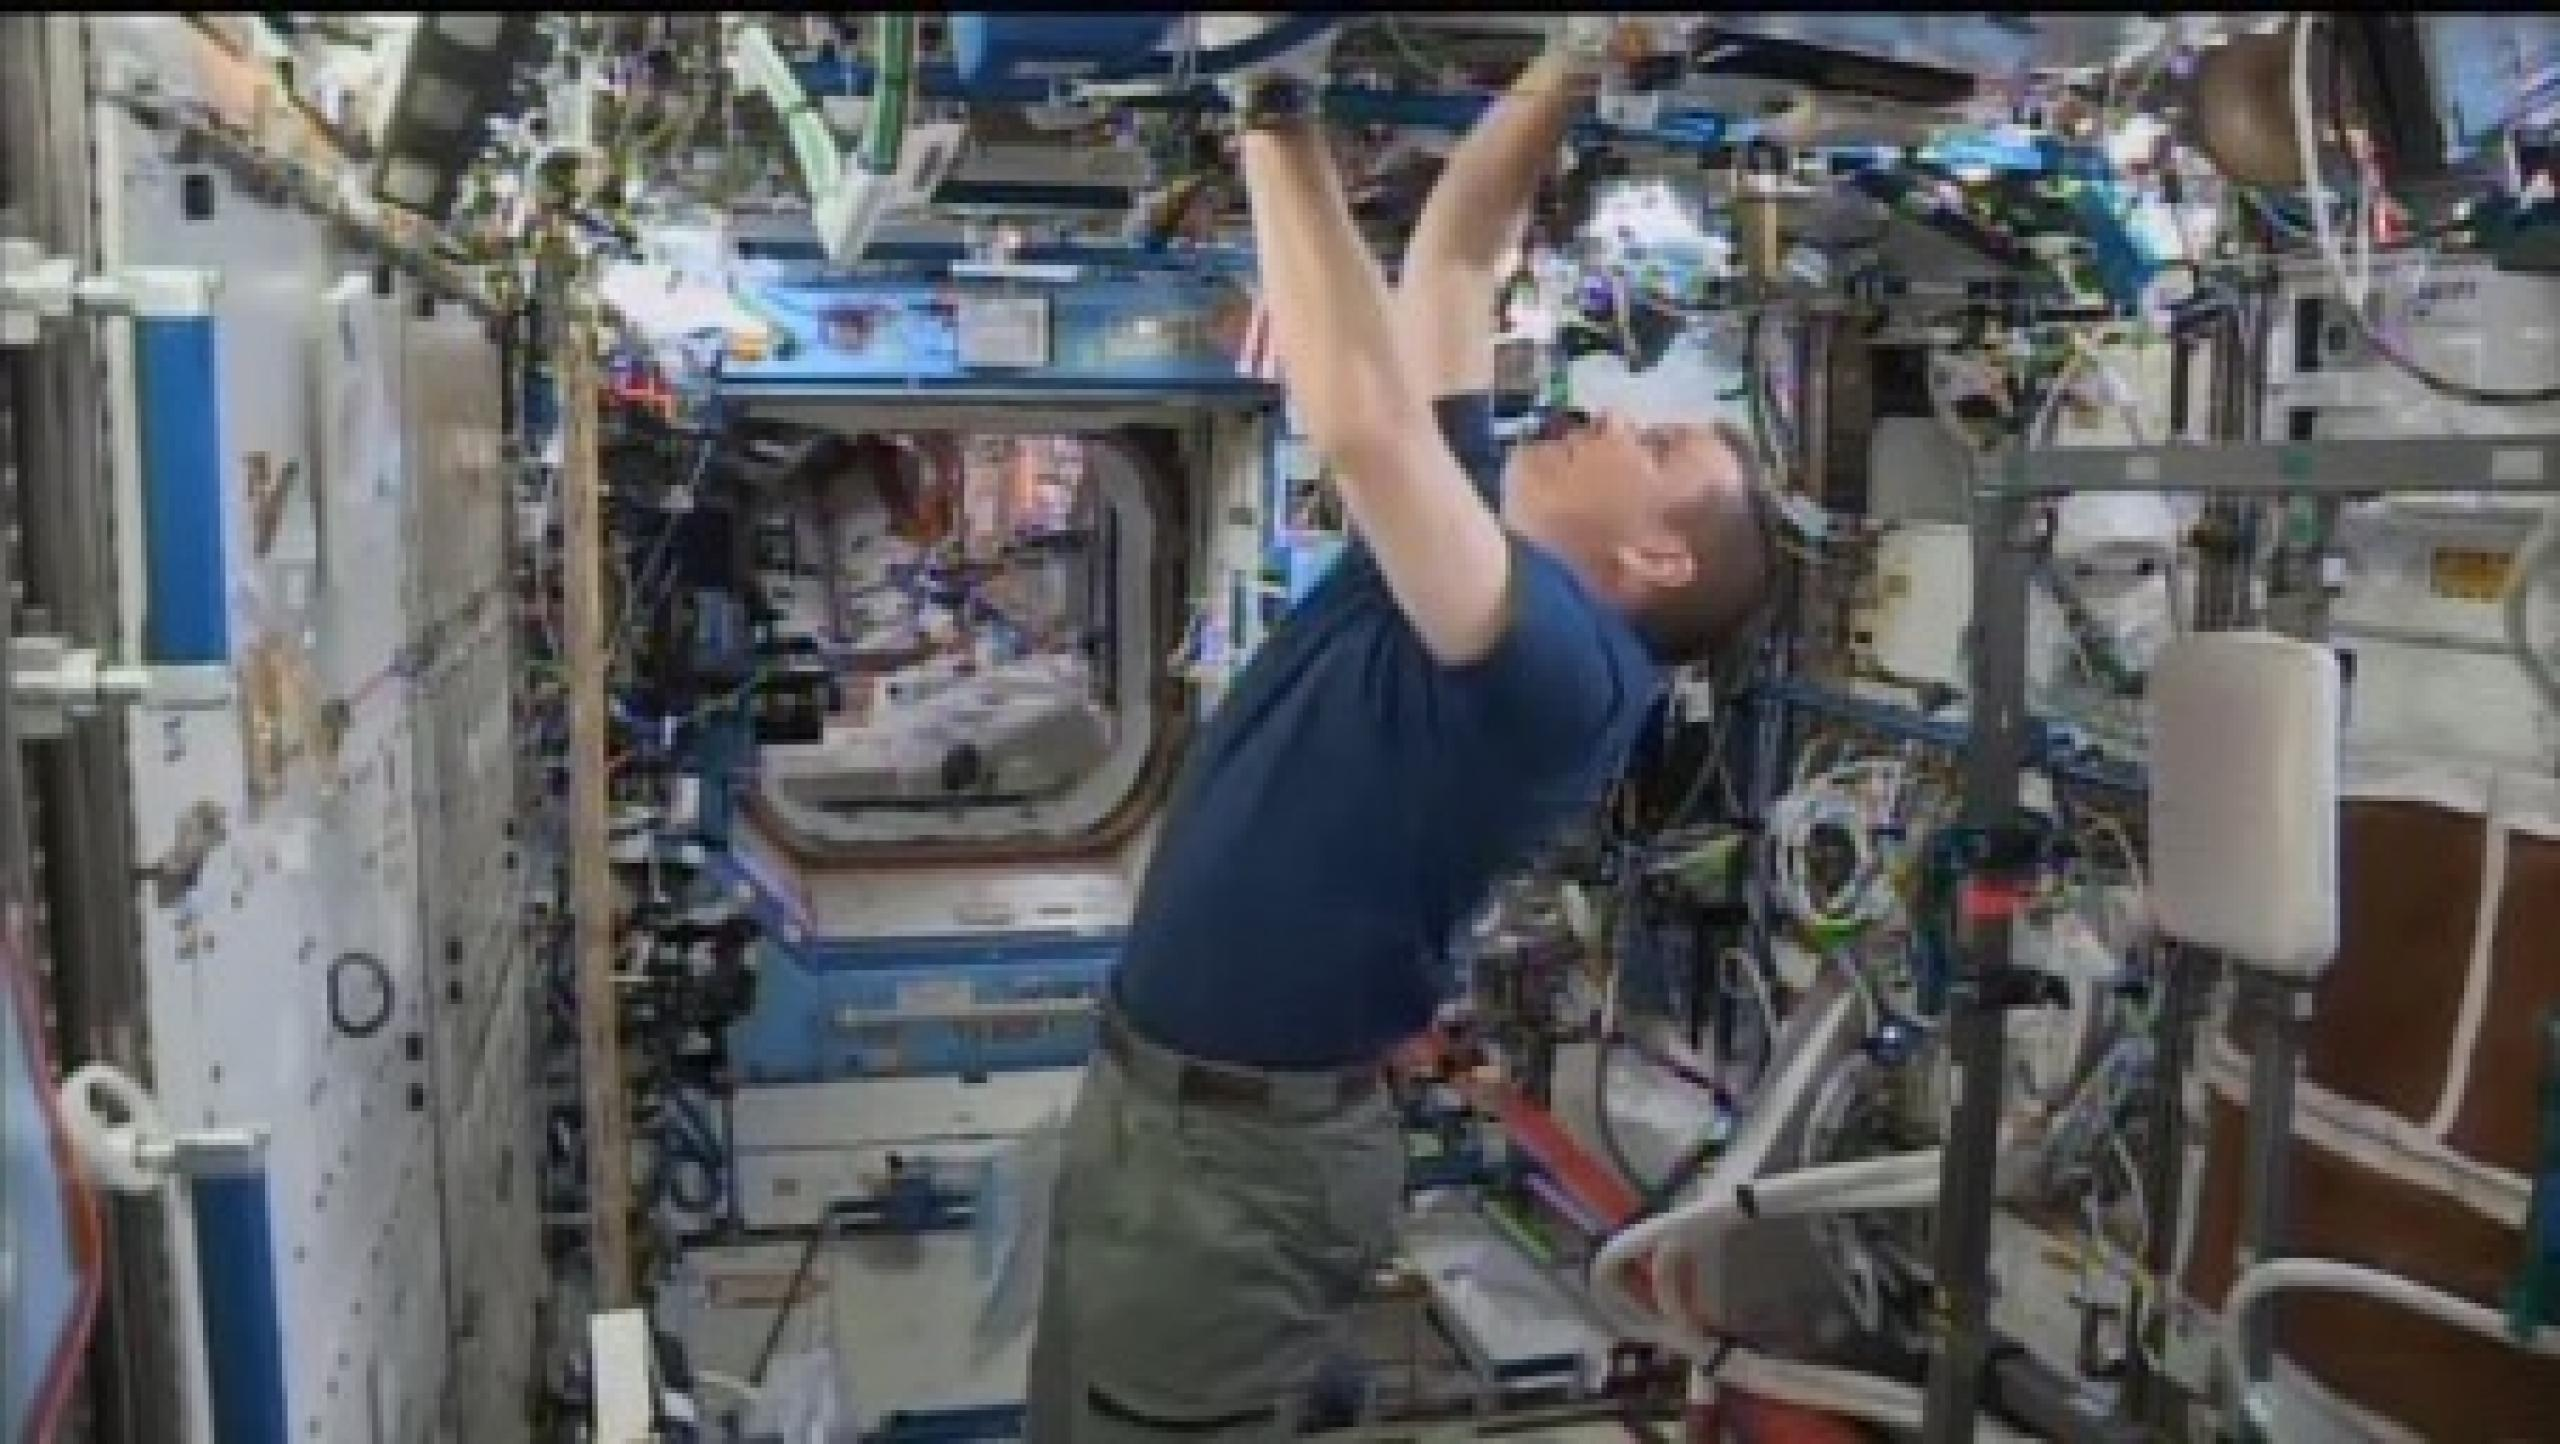 An astronaut working on the space station.